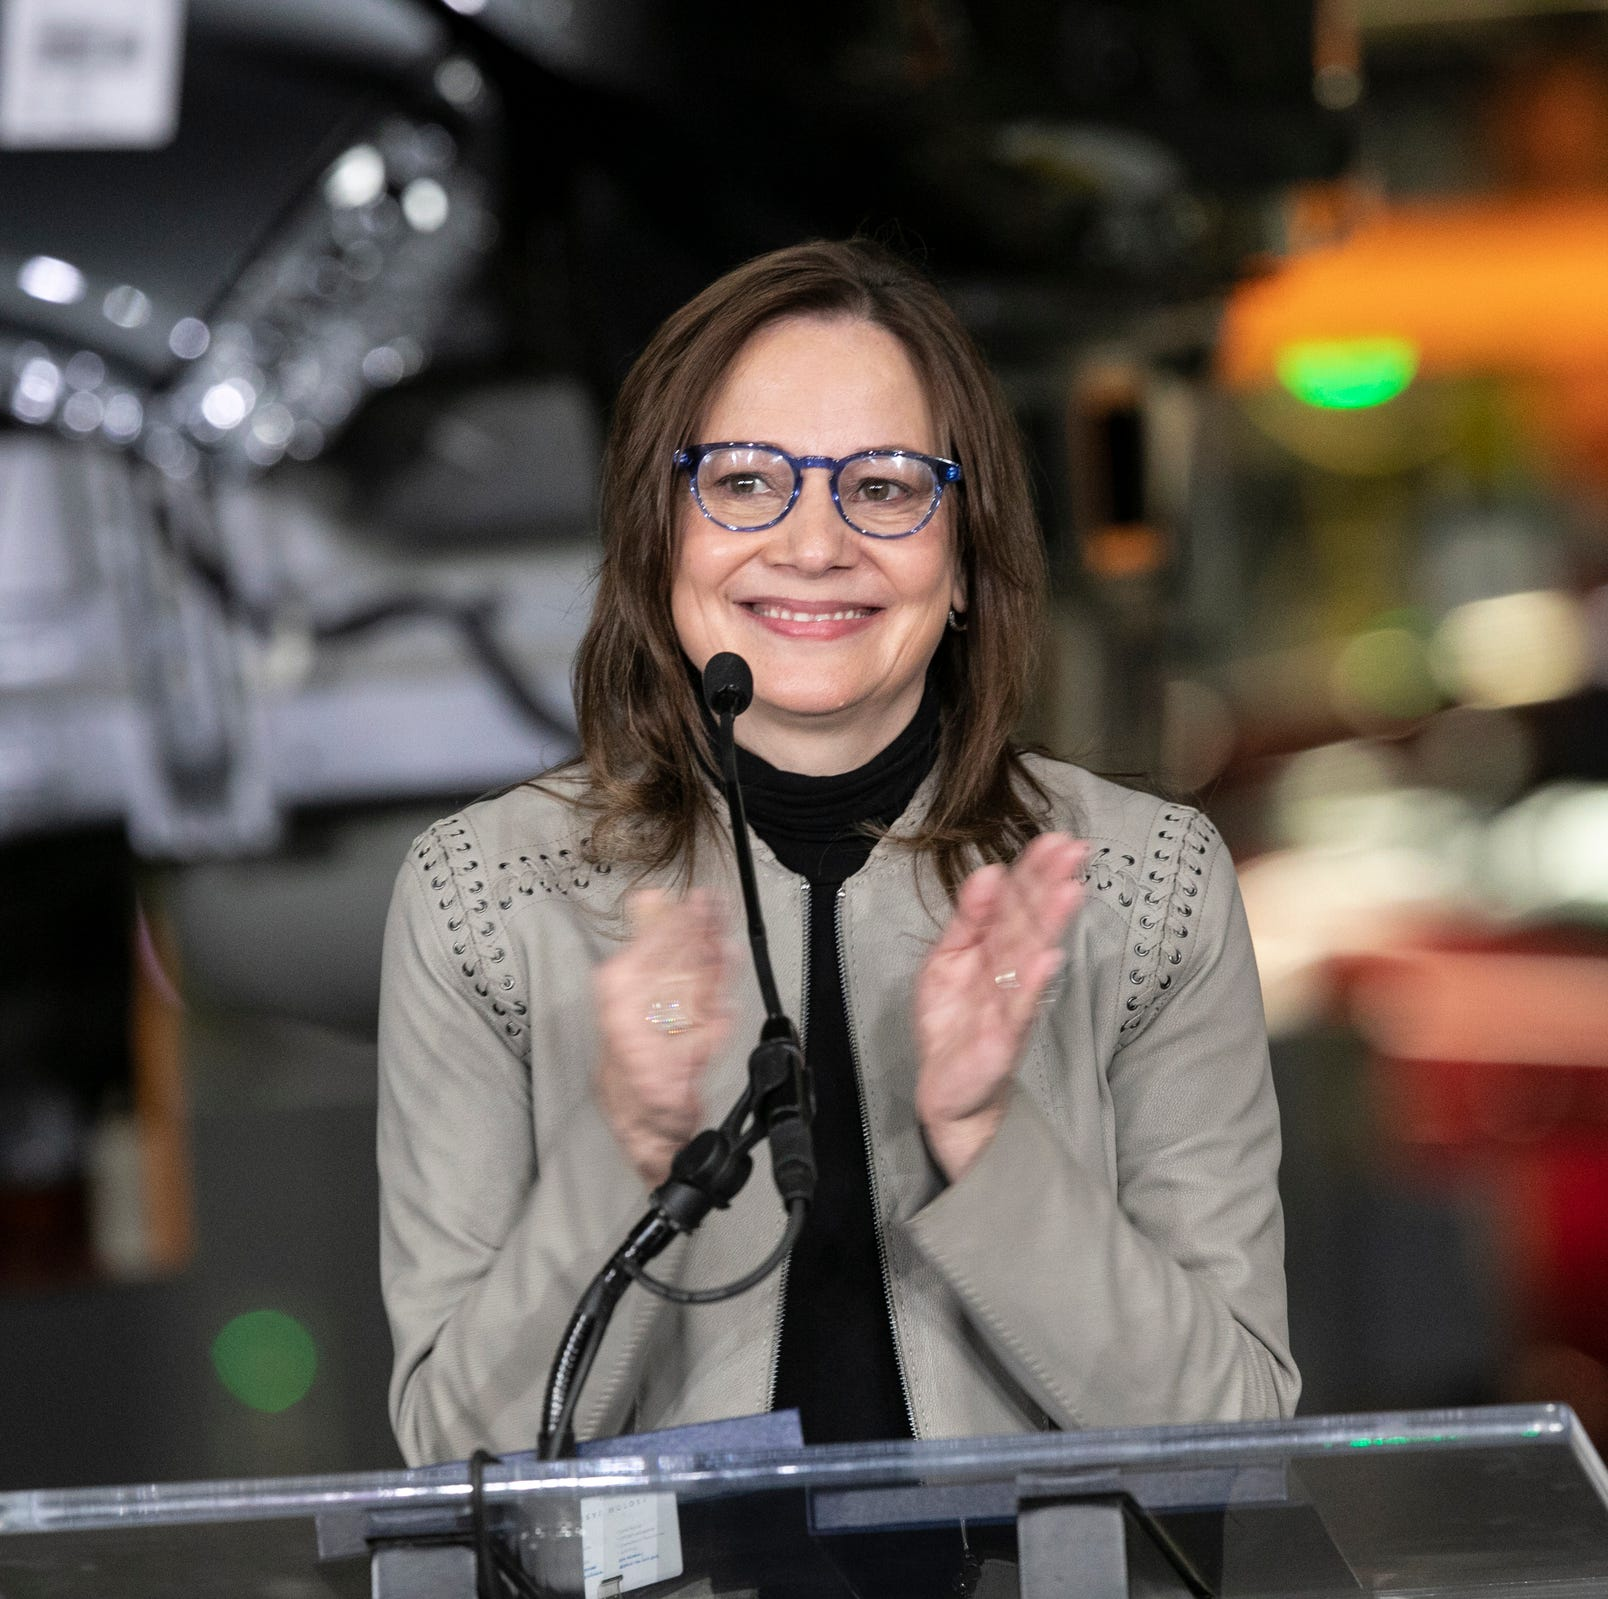 GM CEO Mary Barra's compensation was $21.87 million in 2018, 281 times average GM worker